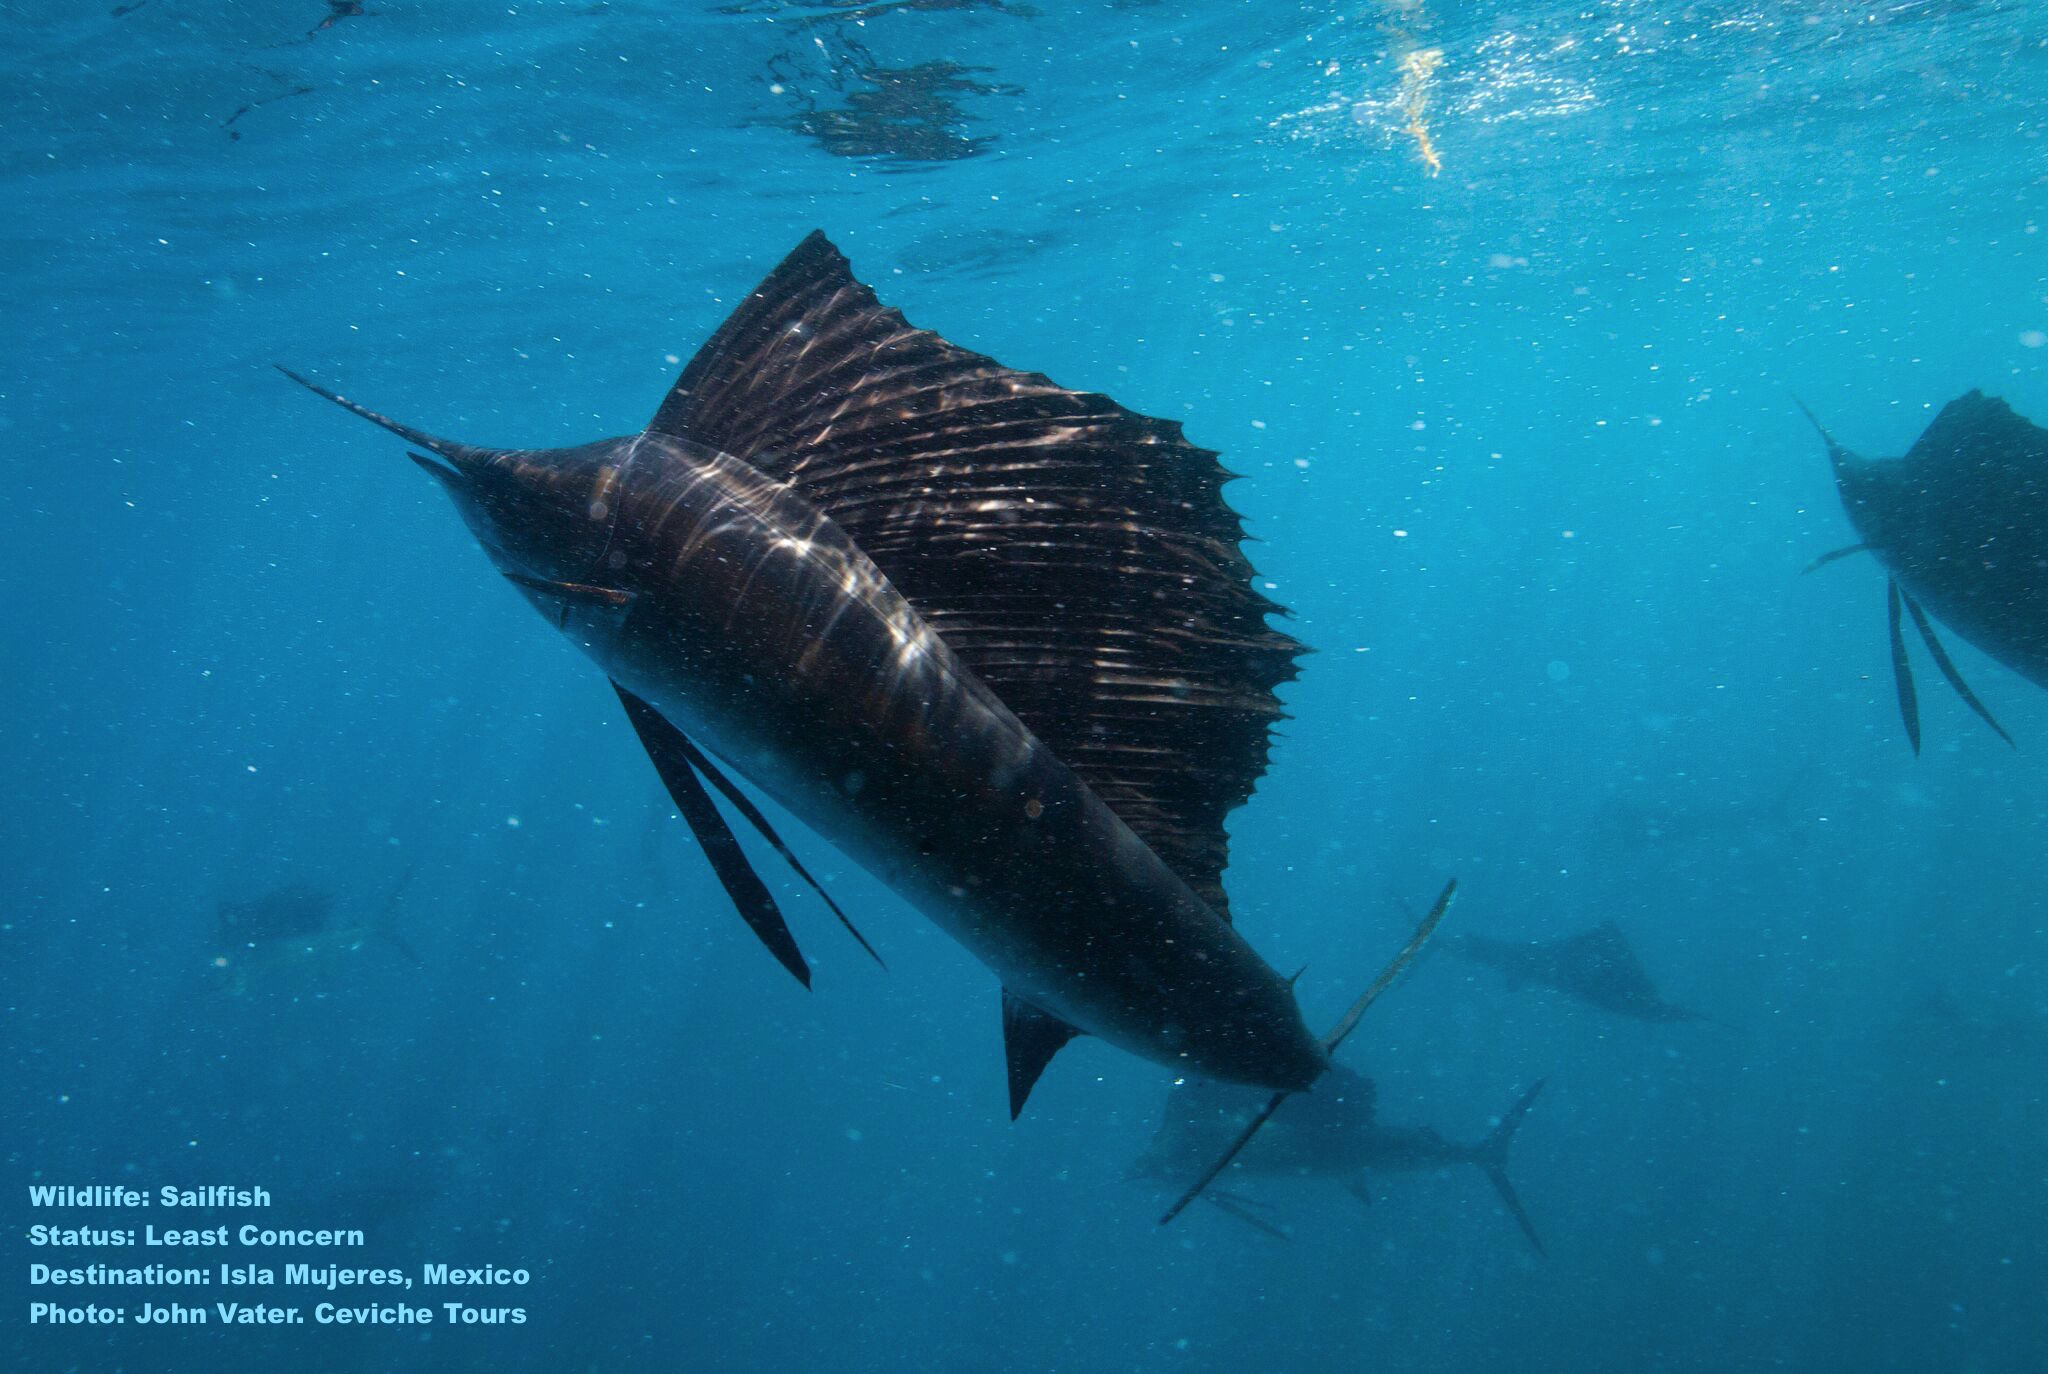 Swimming with sailfish. Why not, asks John Vater of Ceviche Tours. Experience it for yourself! Image: Thanks to John Vater & Ceviche Tours, Isla Mujeres, Mexico.